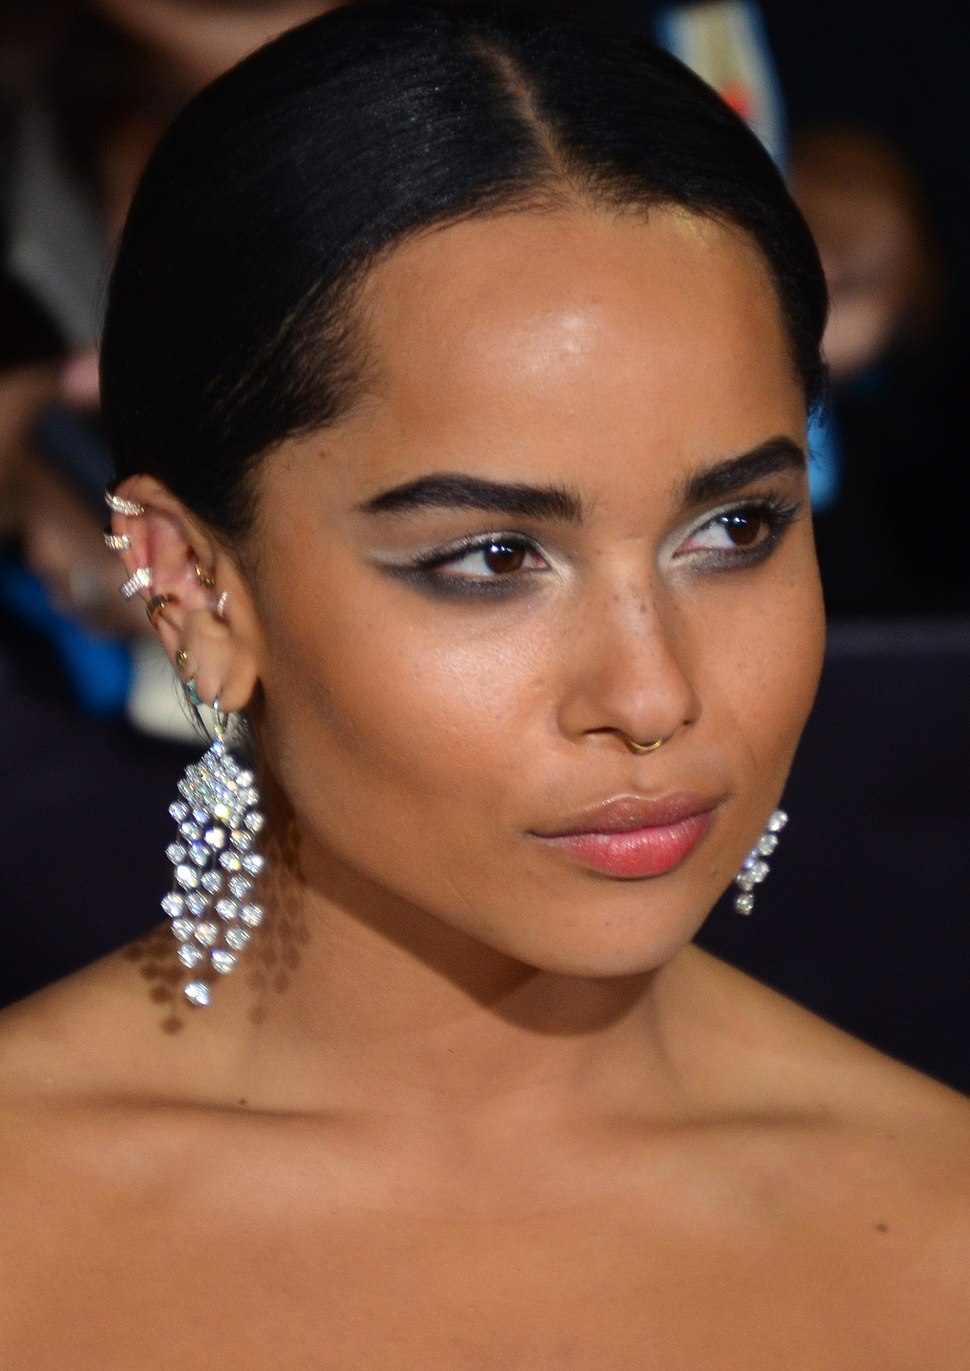 Zoe Kravitz March 18, 2014 (cropped)